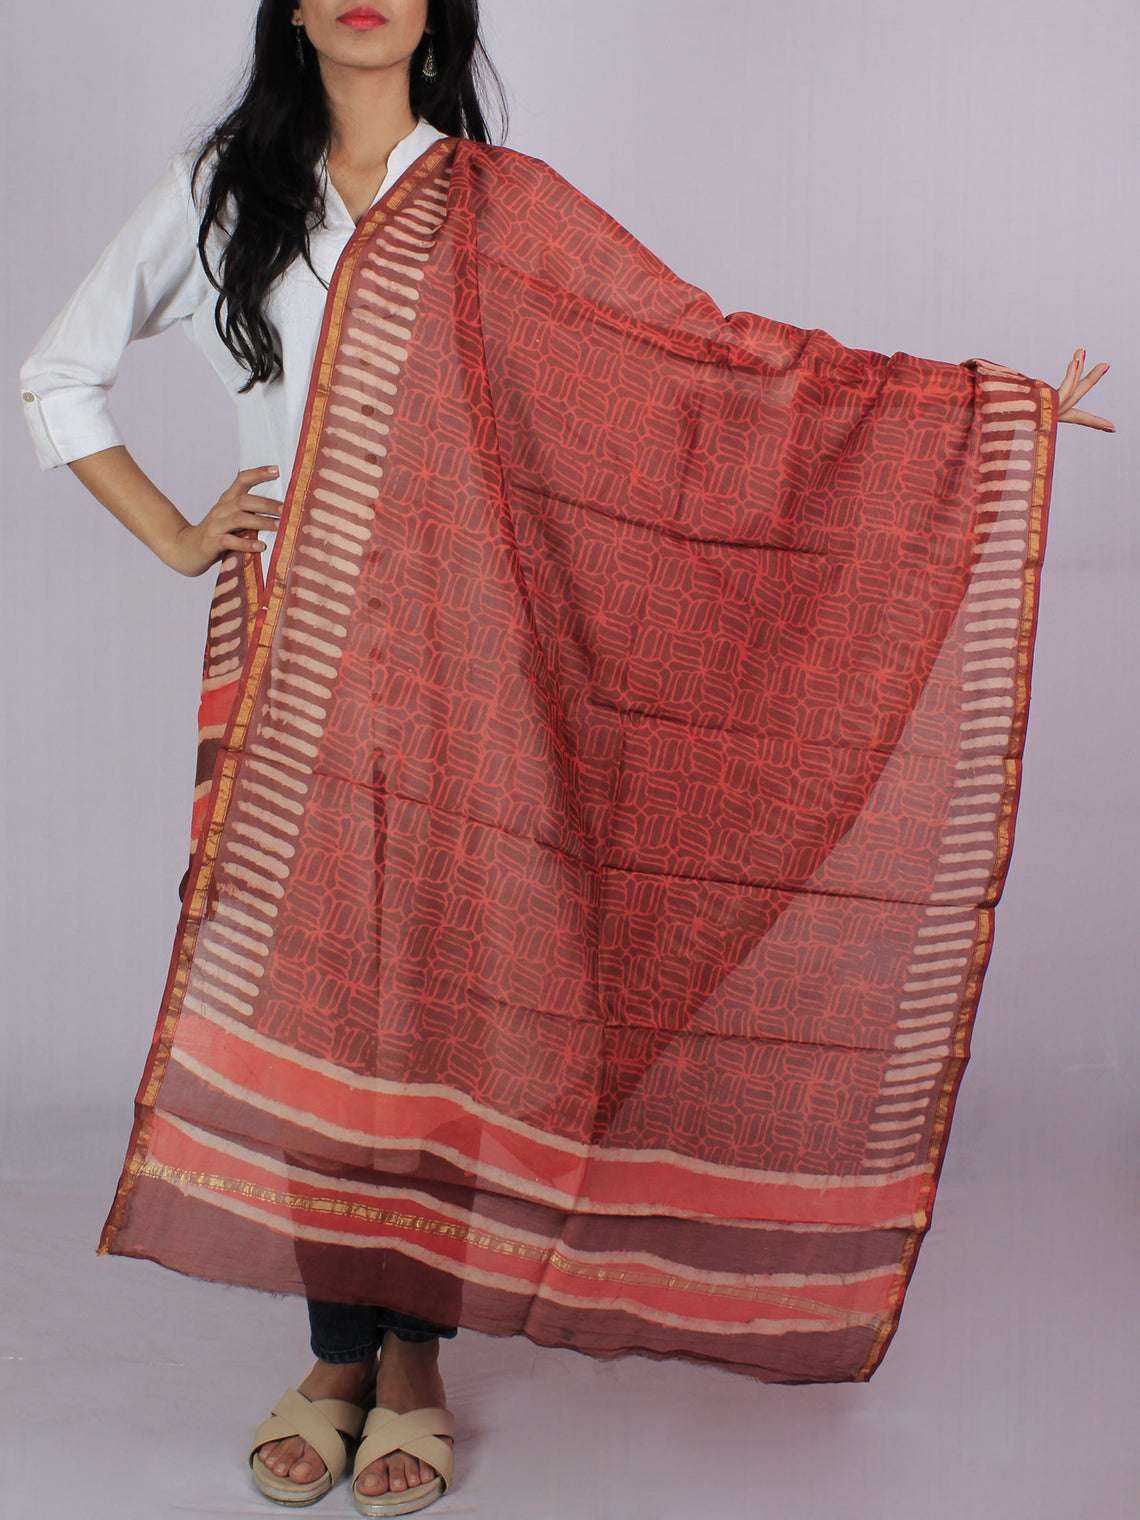 Brick Red Brown Ivory Chanderi Hand Black Printed Dupatta - D04170116